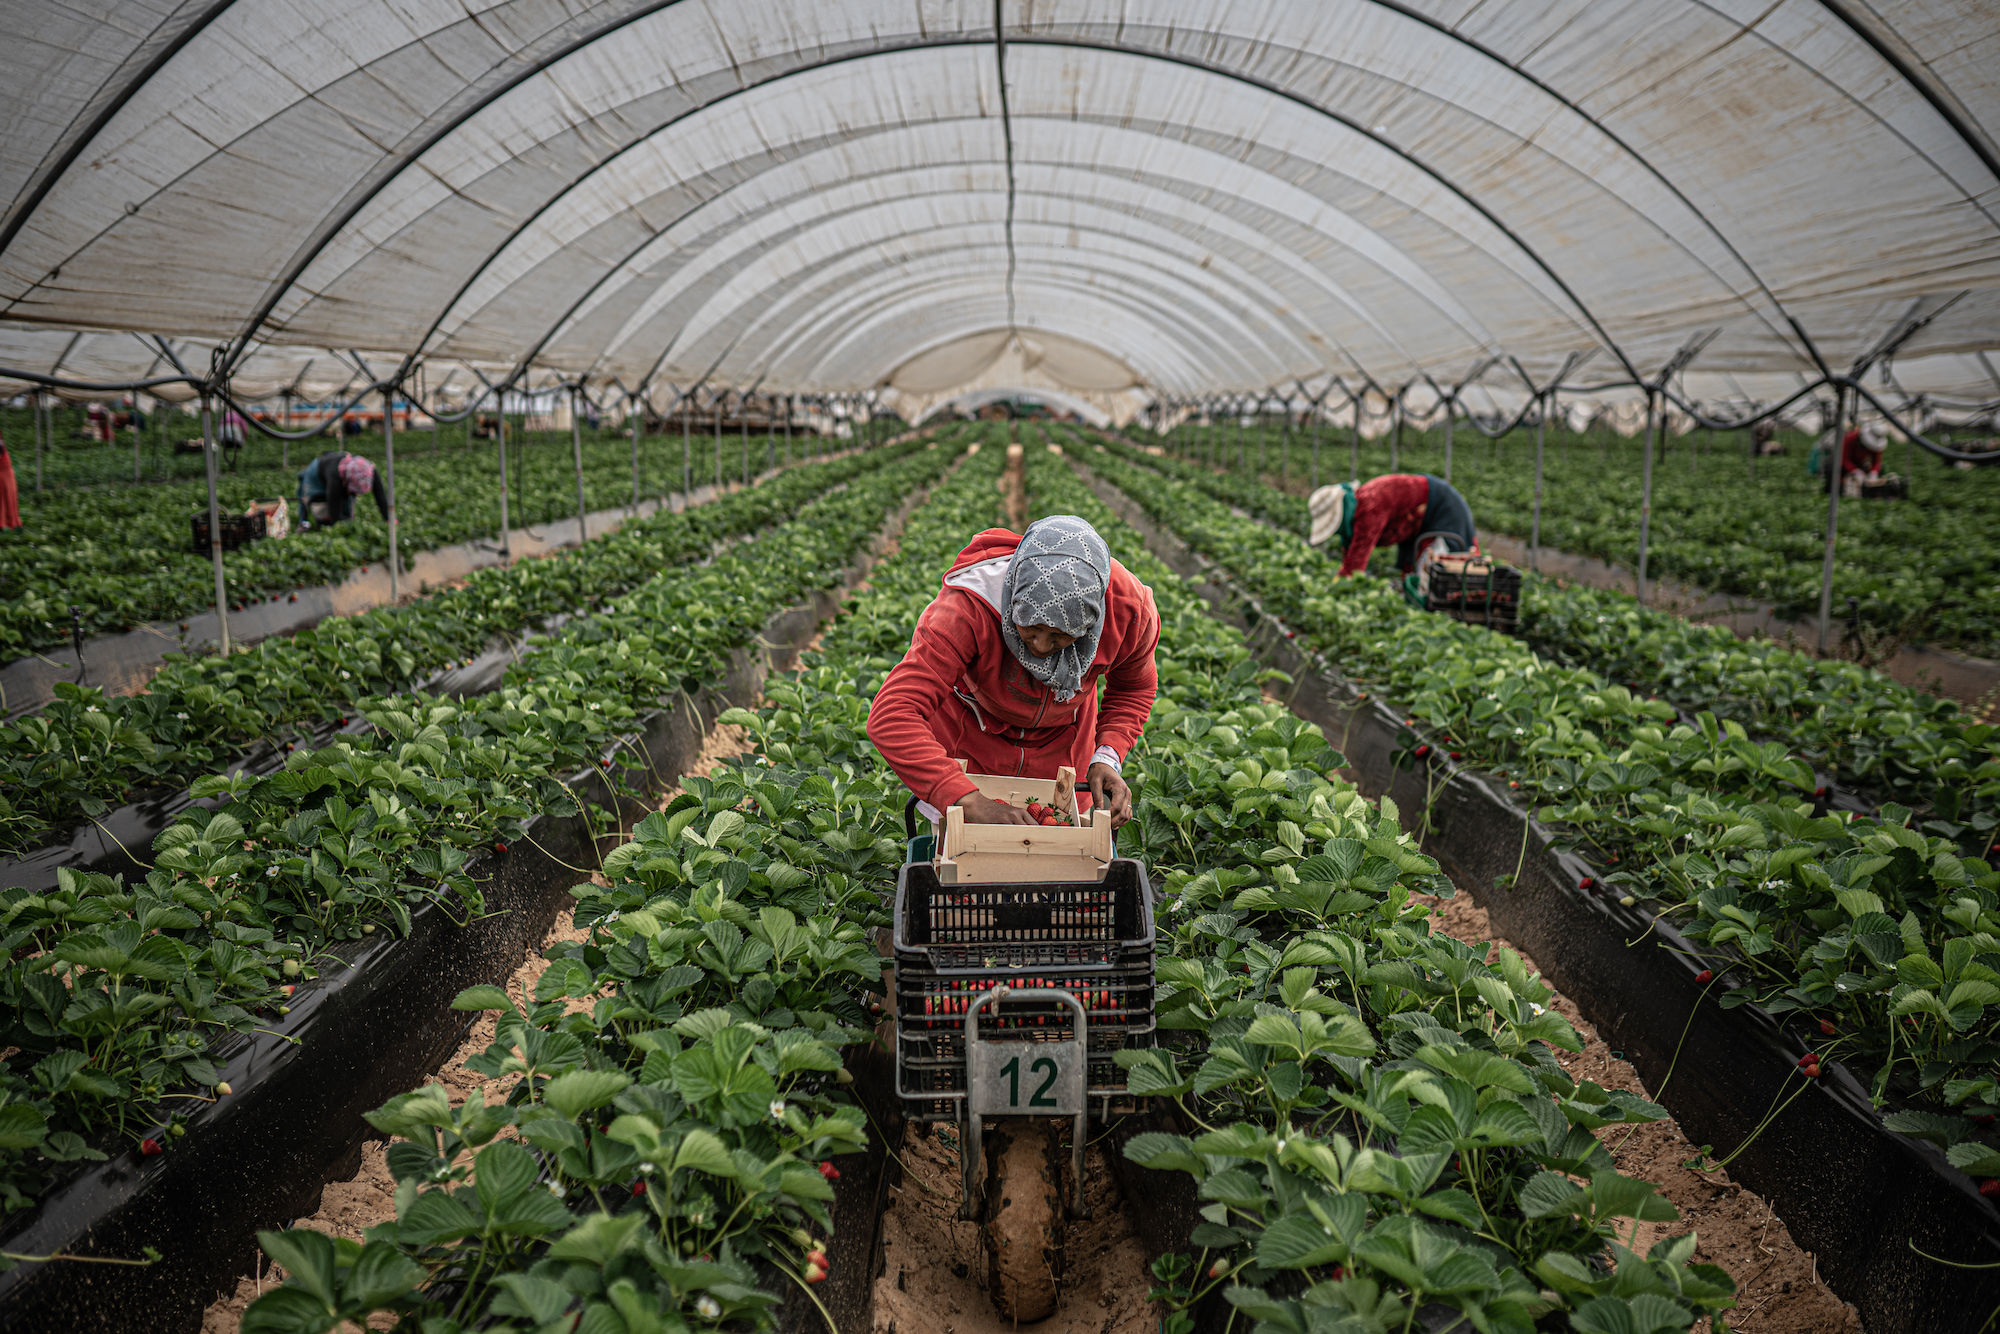 Moroccan women workers Spain strawberry fields